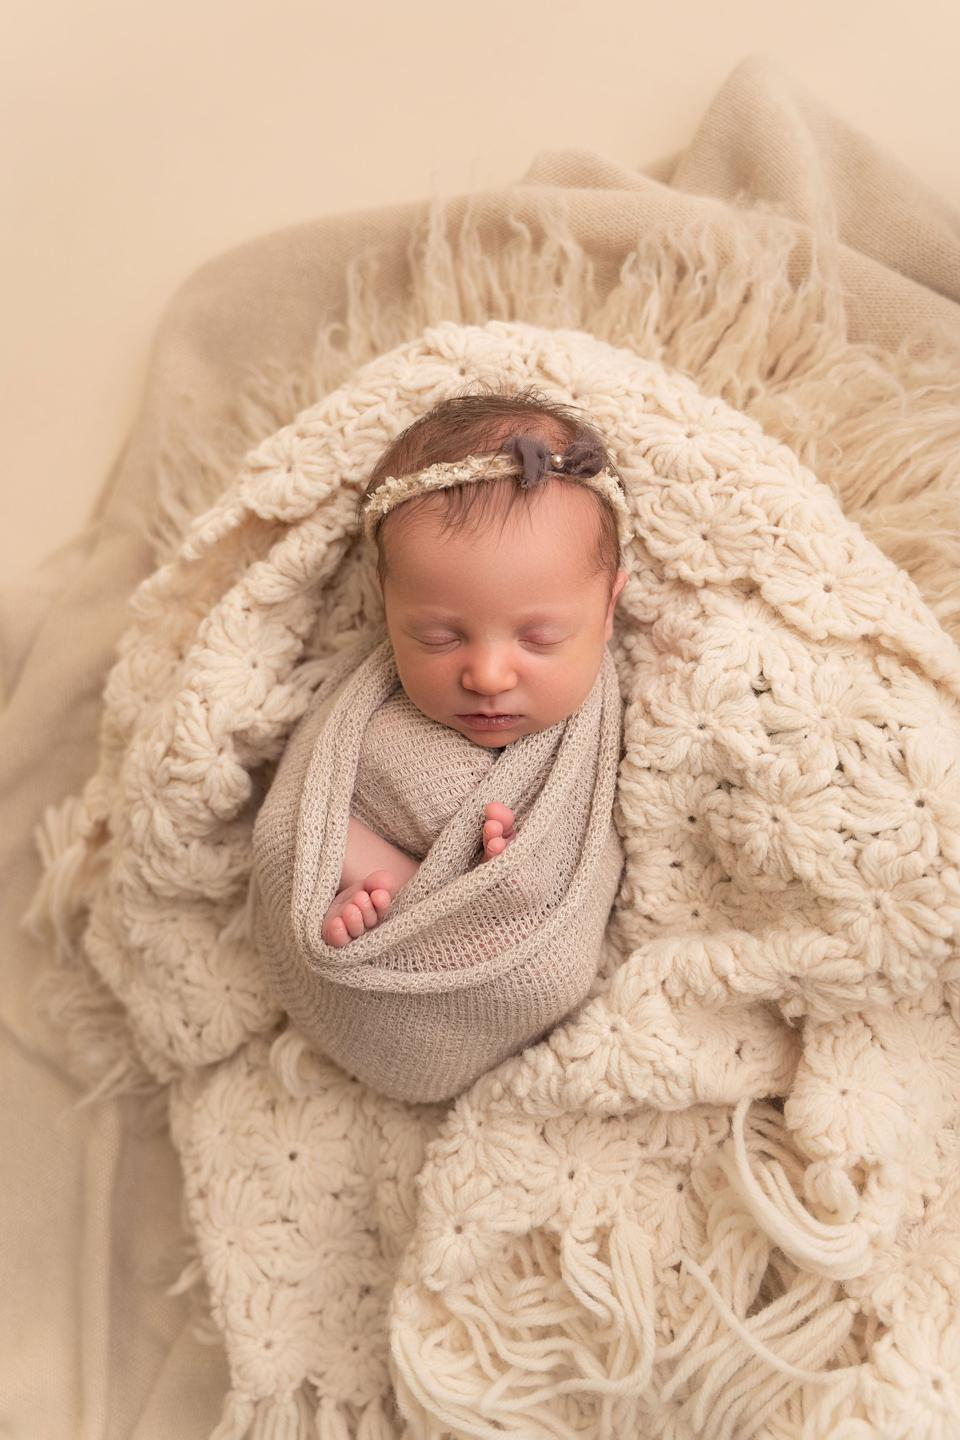 <p>Molly Everette Gibson was born on 26 October</p>Haleigh Crabtree Photography / www.haleighcrabtreephotography.com